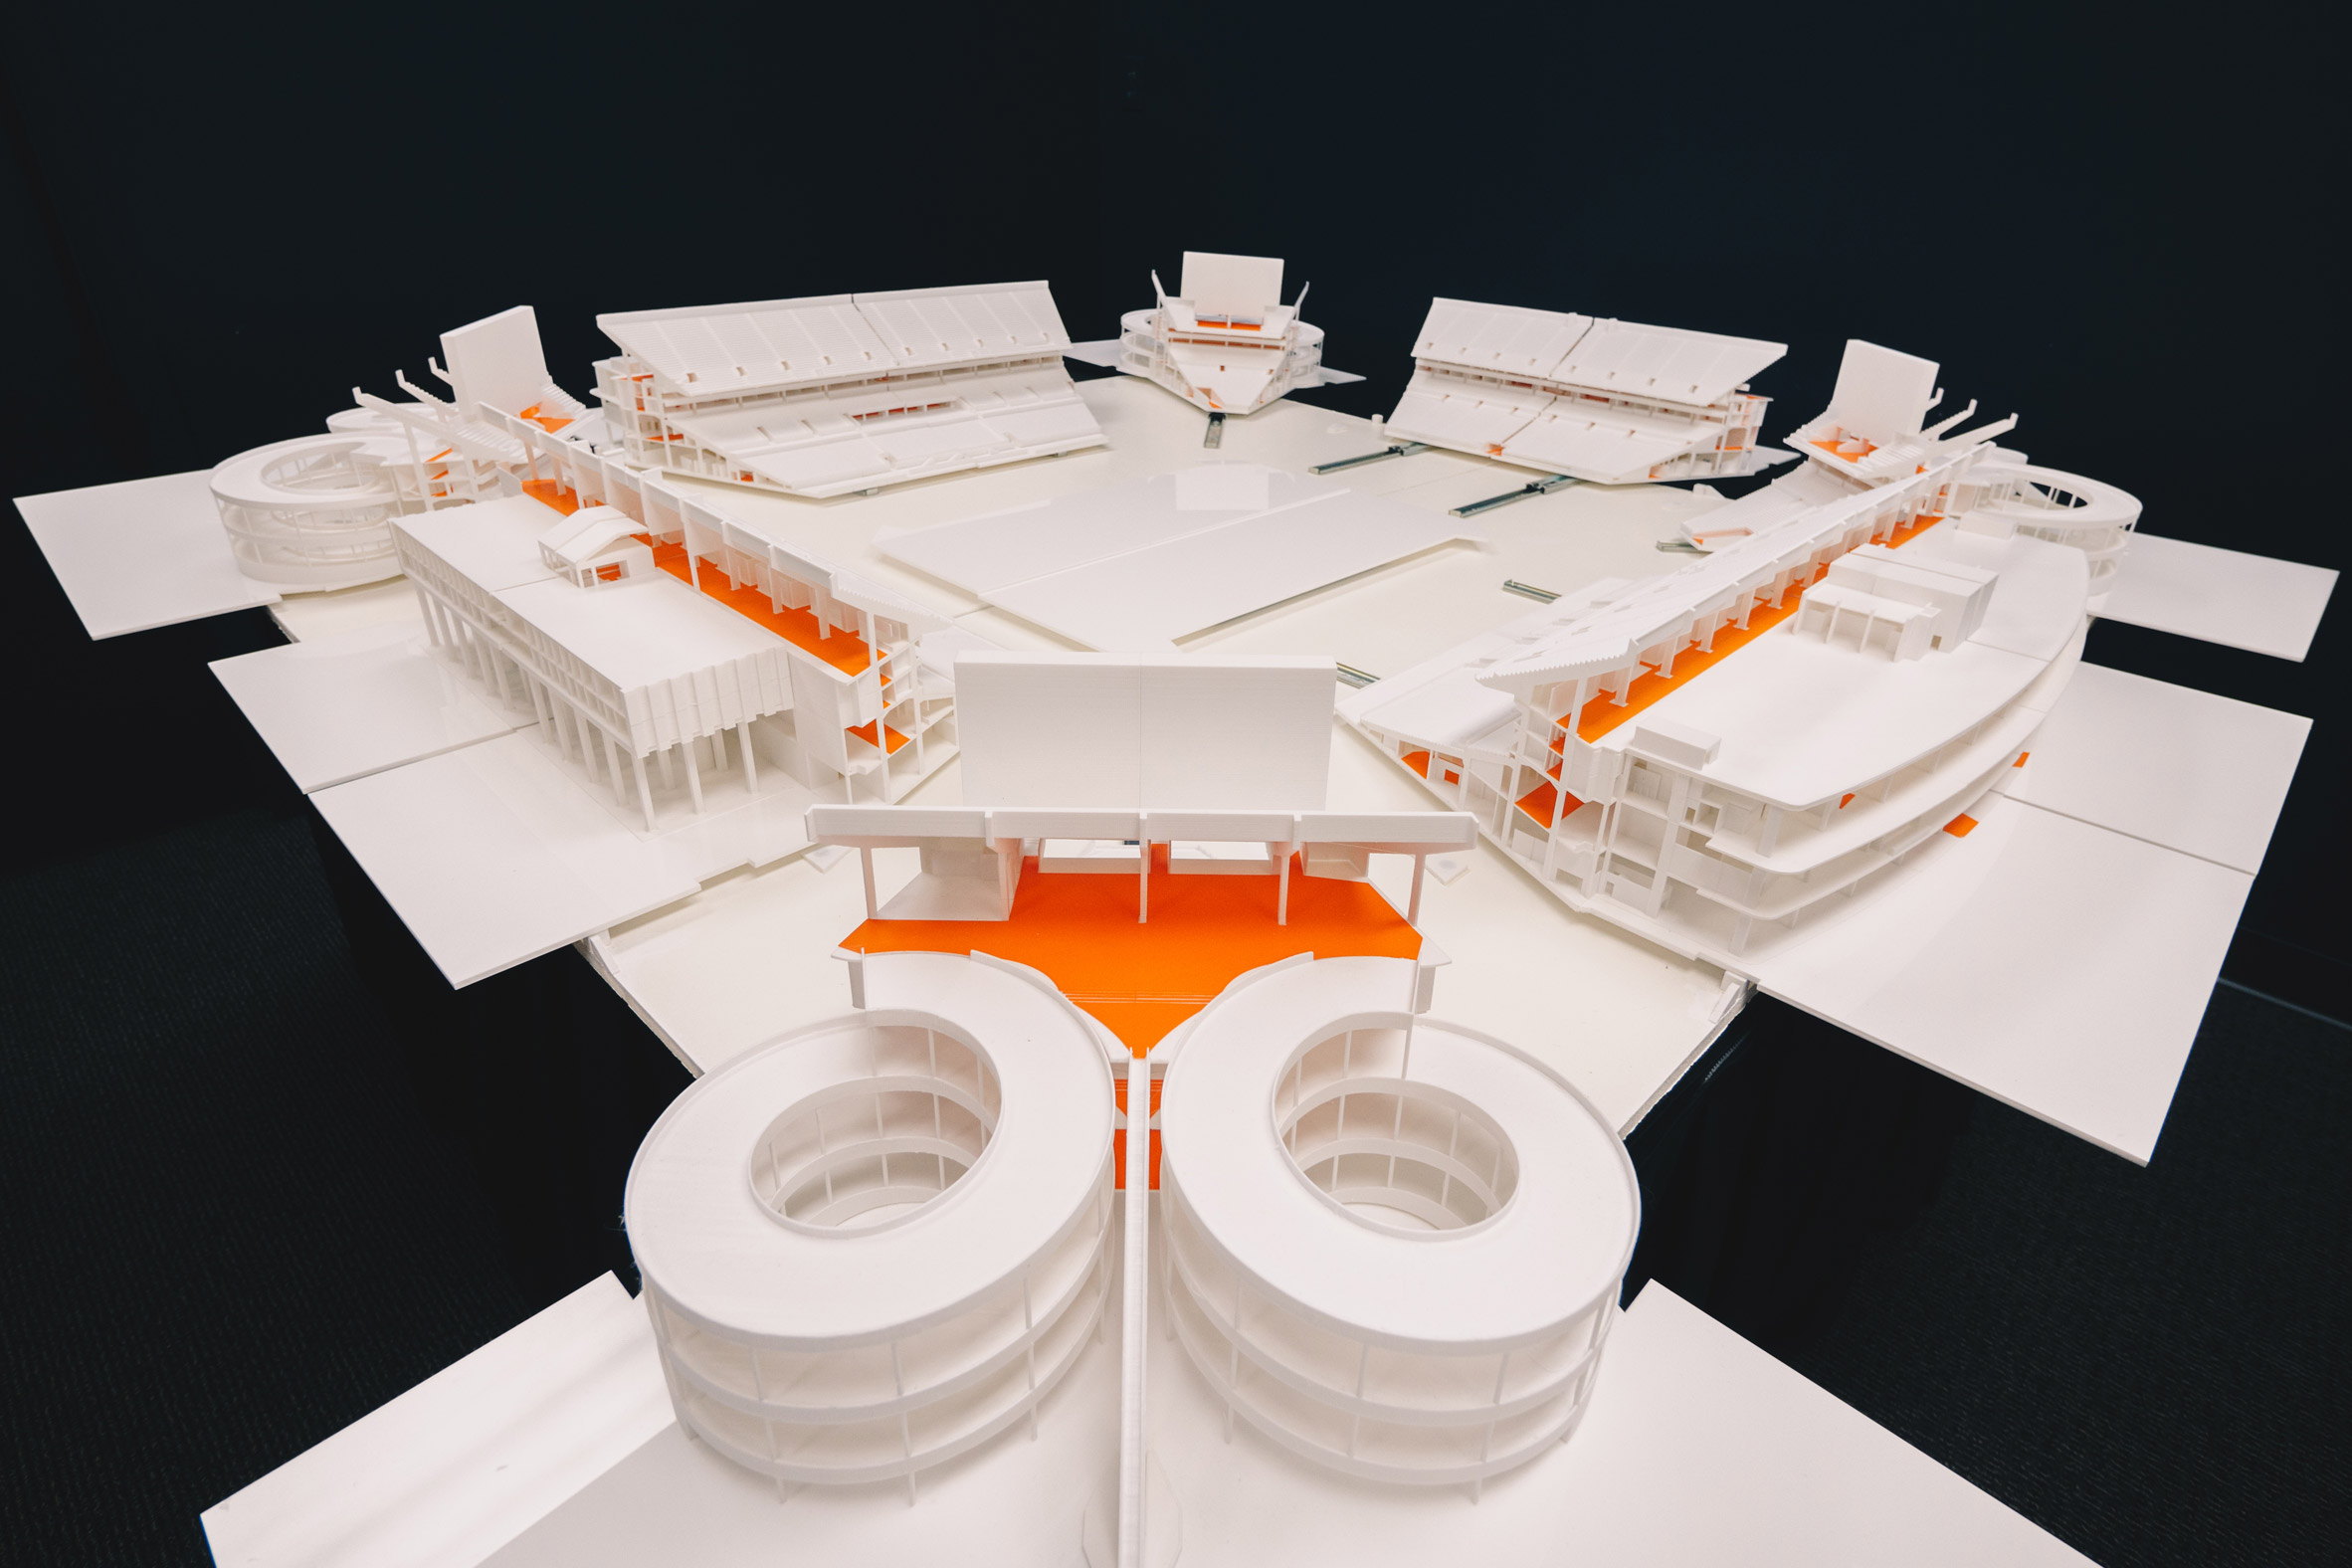 3D-printed Hard Rock Stadium model by FIU students